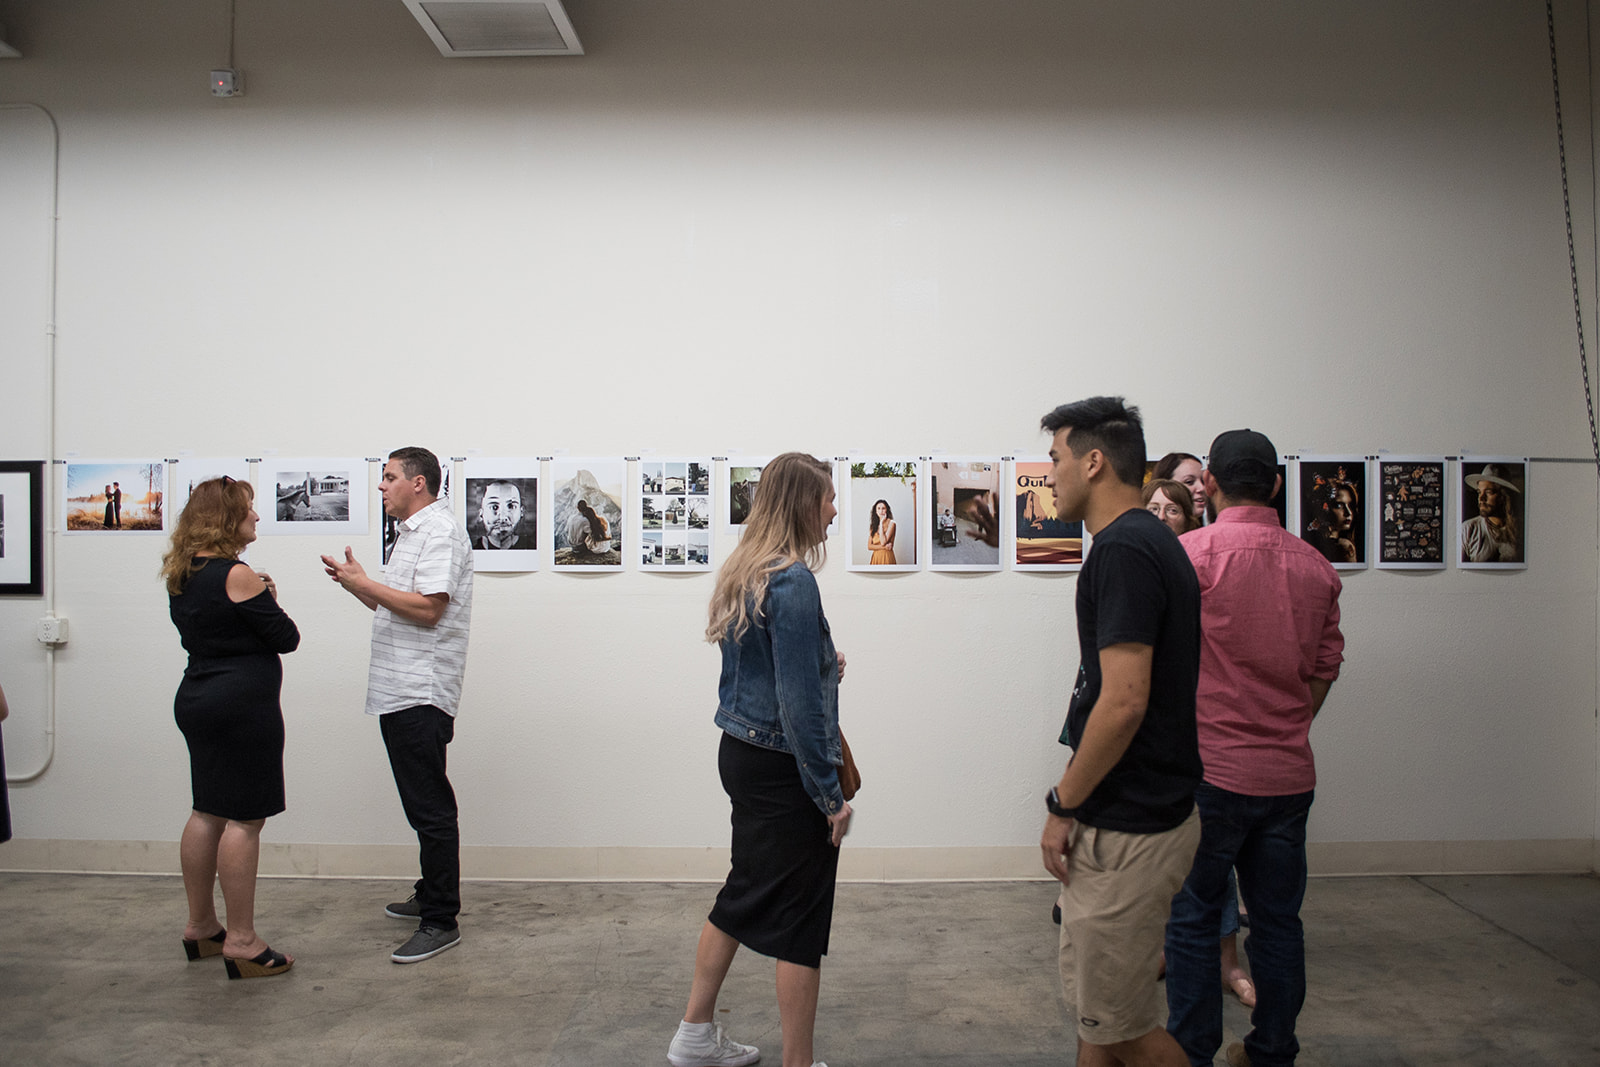 The College of Architecture, Visual Arts and Design (CAVAD) at California Baptist University hosted a Faculty and Alumni Exhibition on Sept. 28. The exhibit displayed more than 30 pieces of photography and graphic designs created by CBU instructors and alumni.